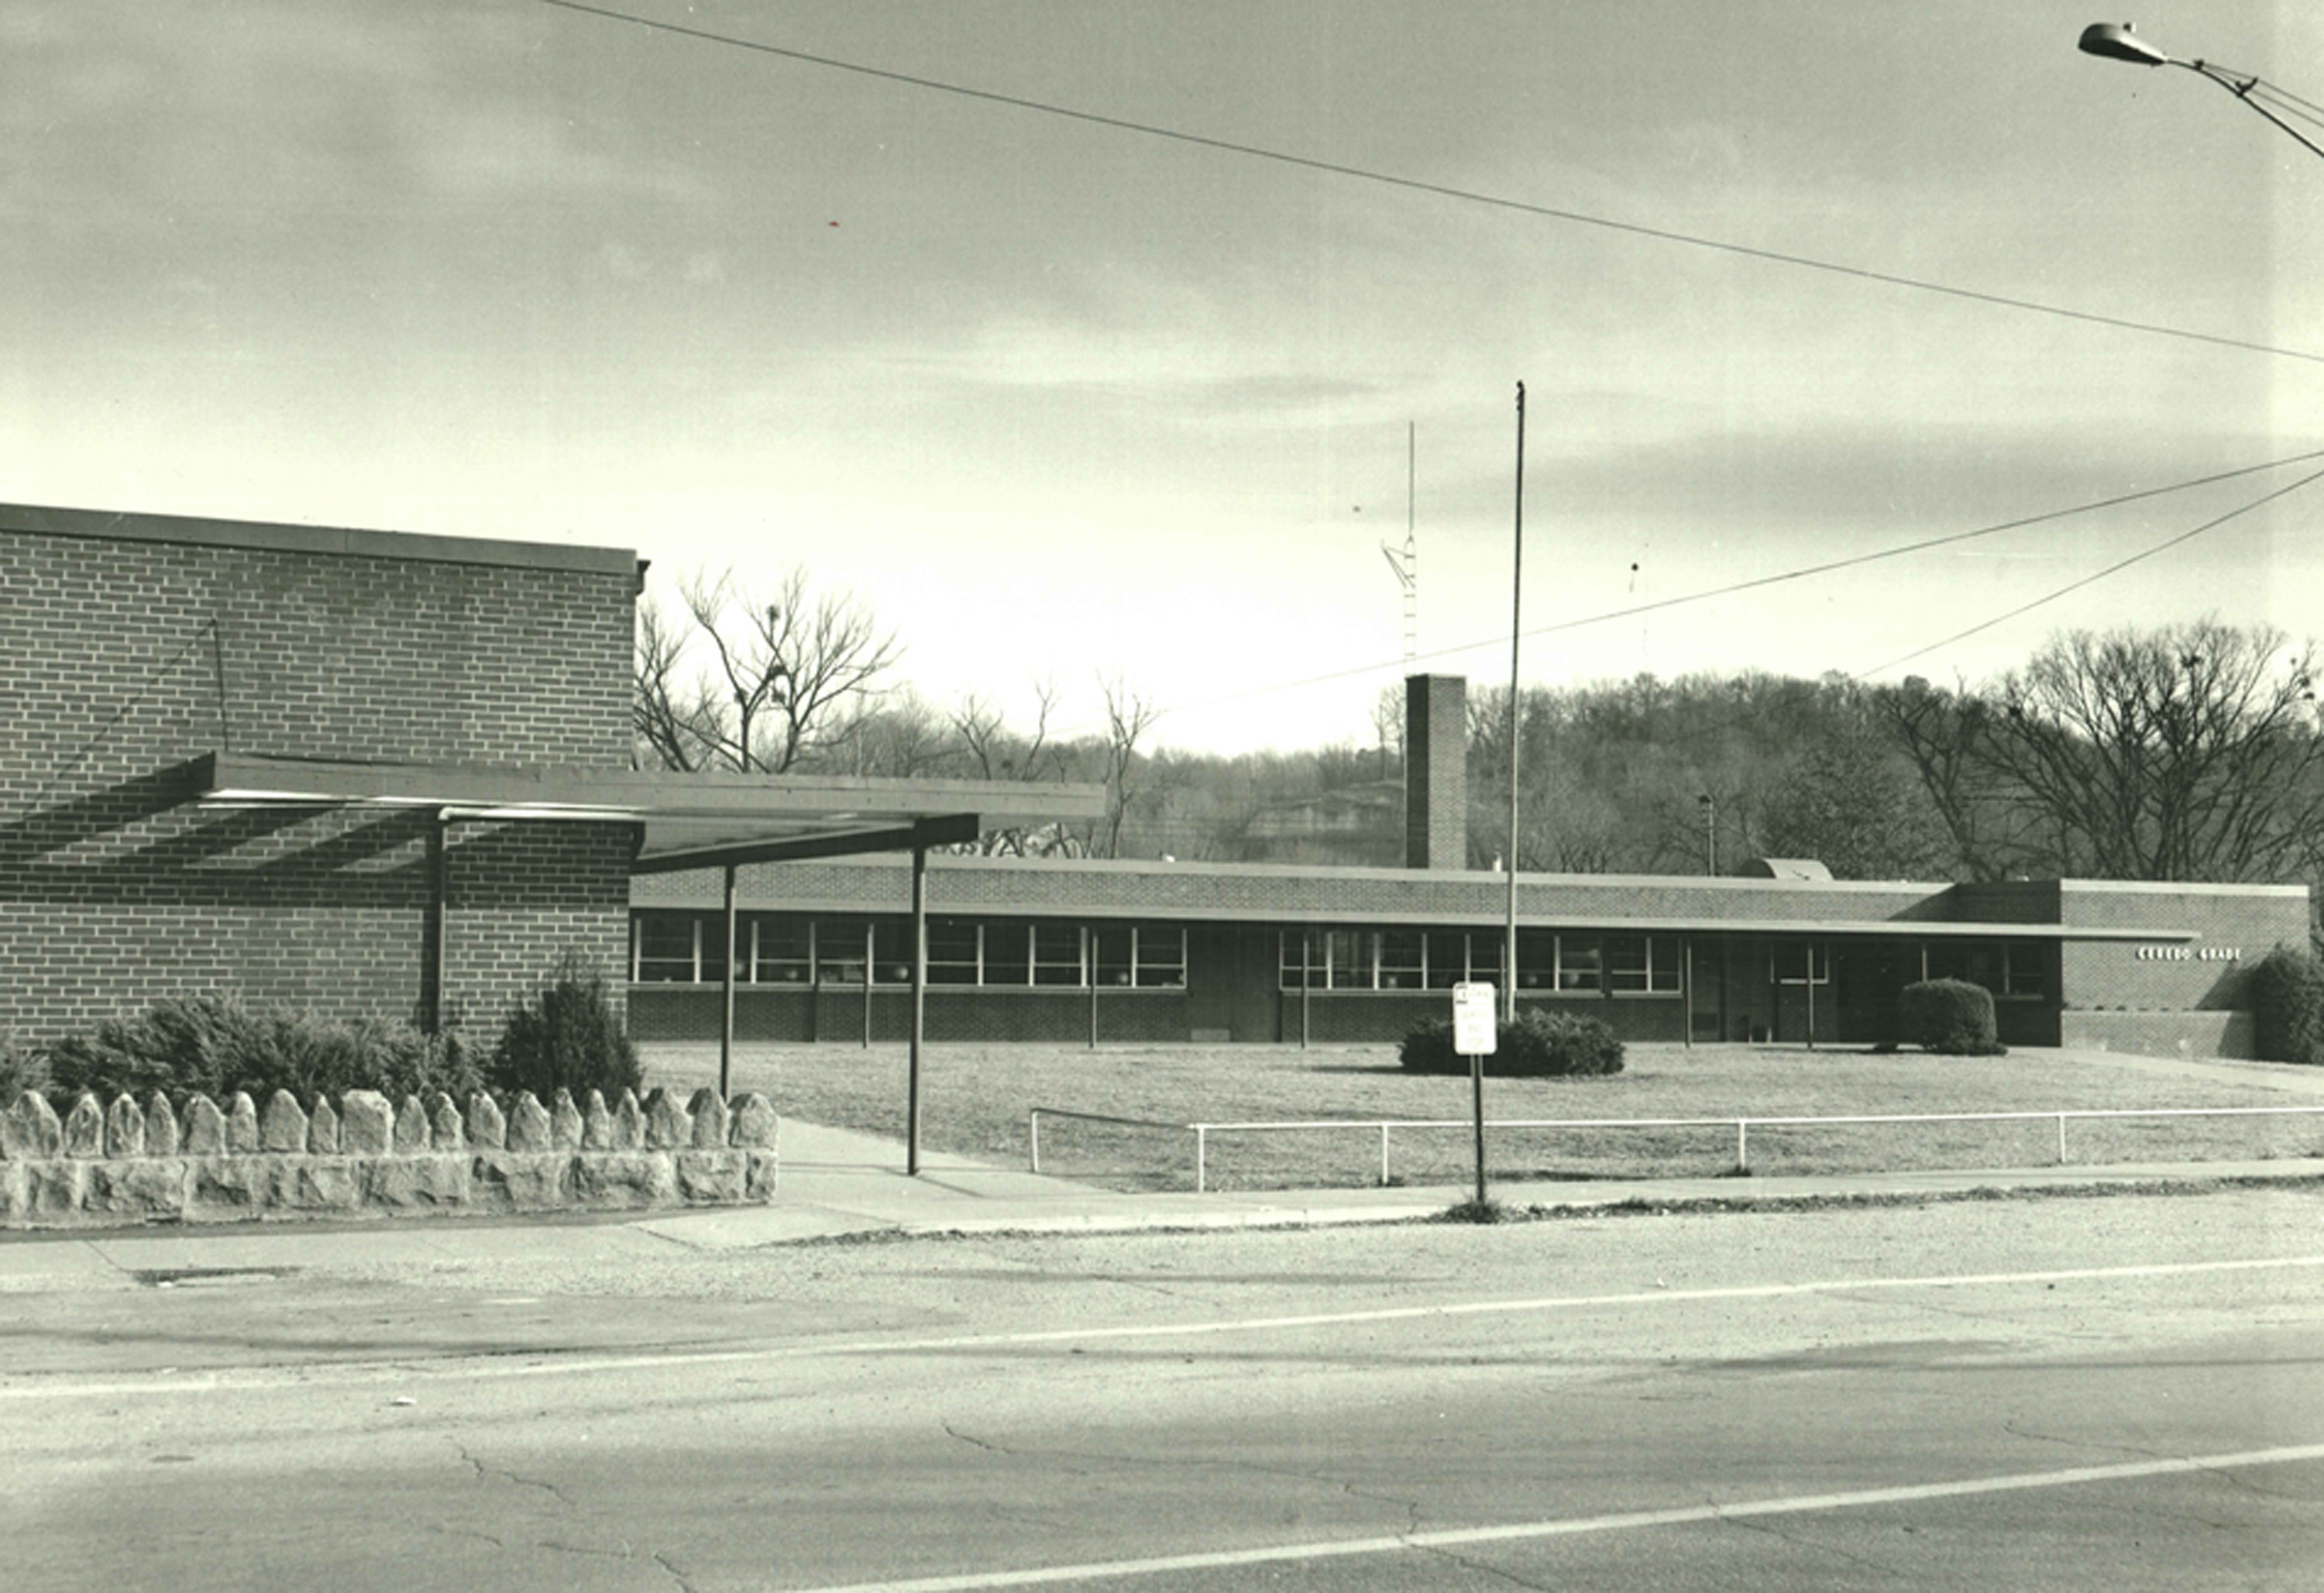 The final Ceredo Elementary School building sometime after its opening in December 1957. Image courtesy of the Ceredo Historical Society Museum.